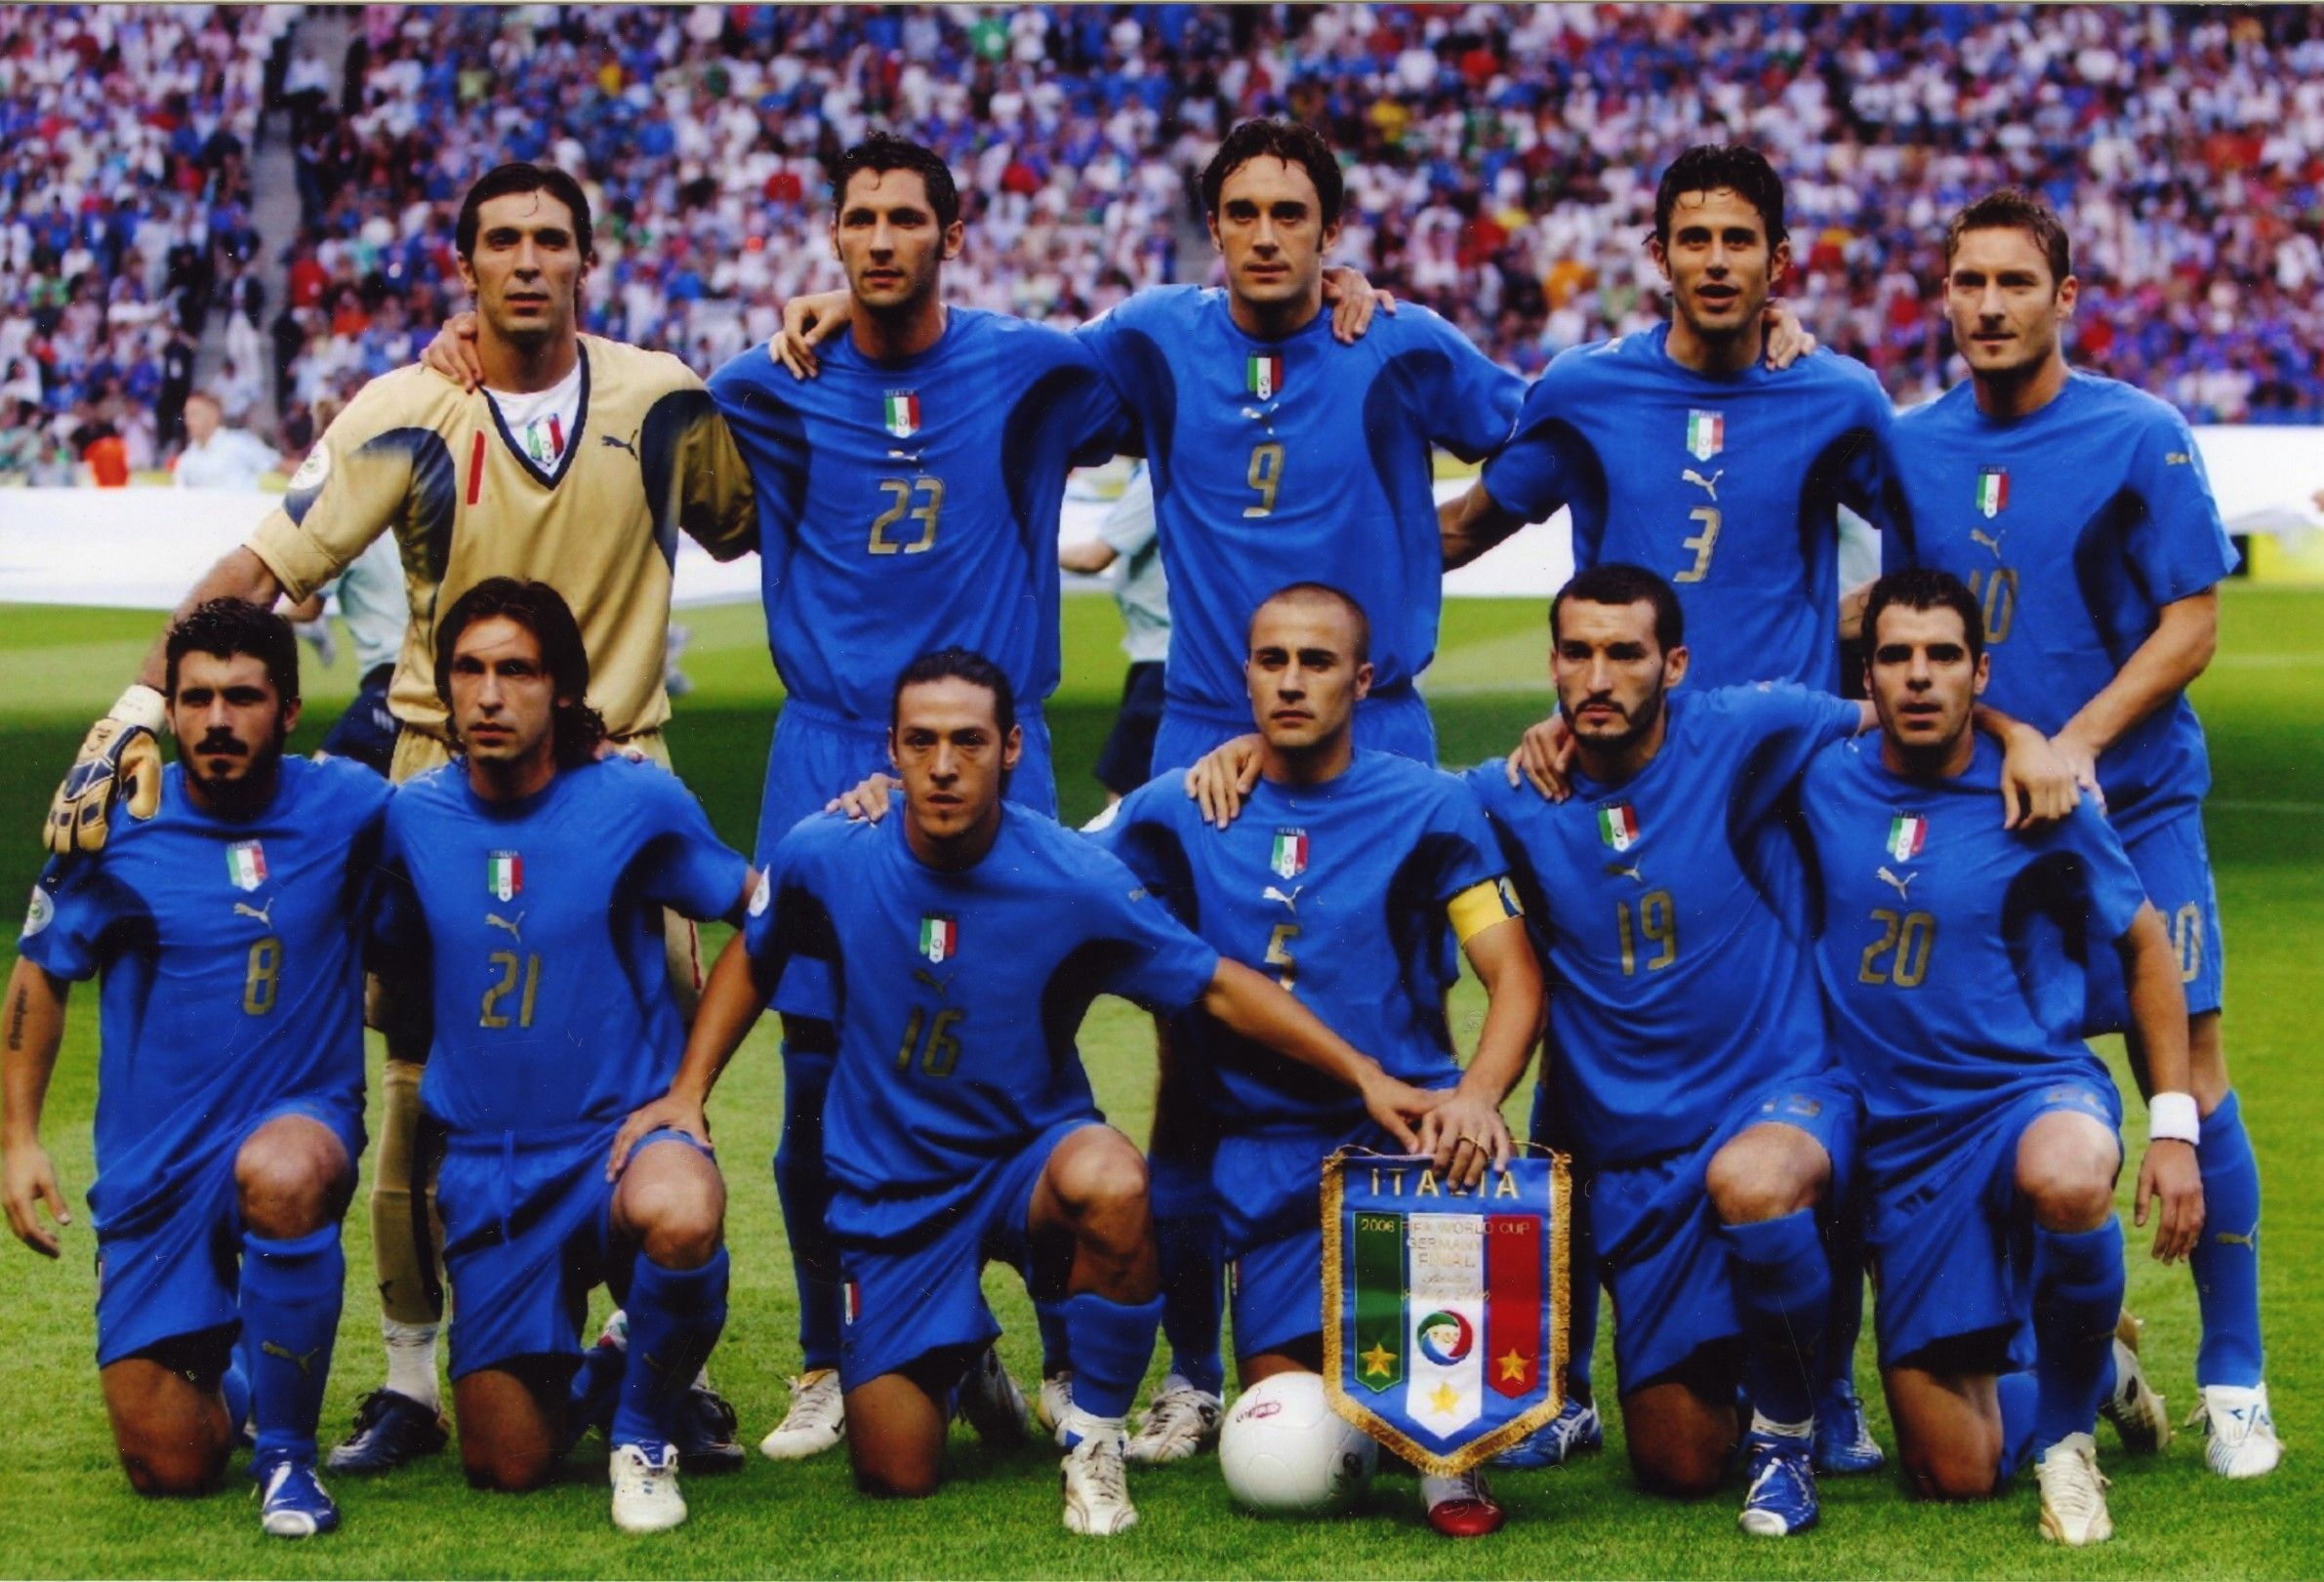 Pin by Frank Paciolla on Masters of the Game | World cup shirts ...